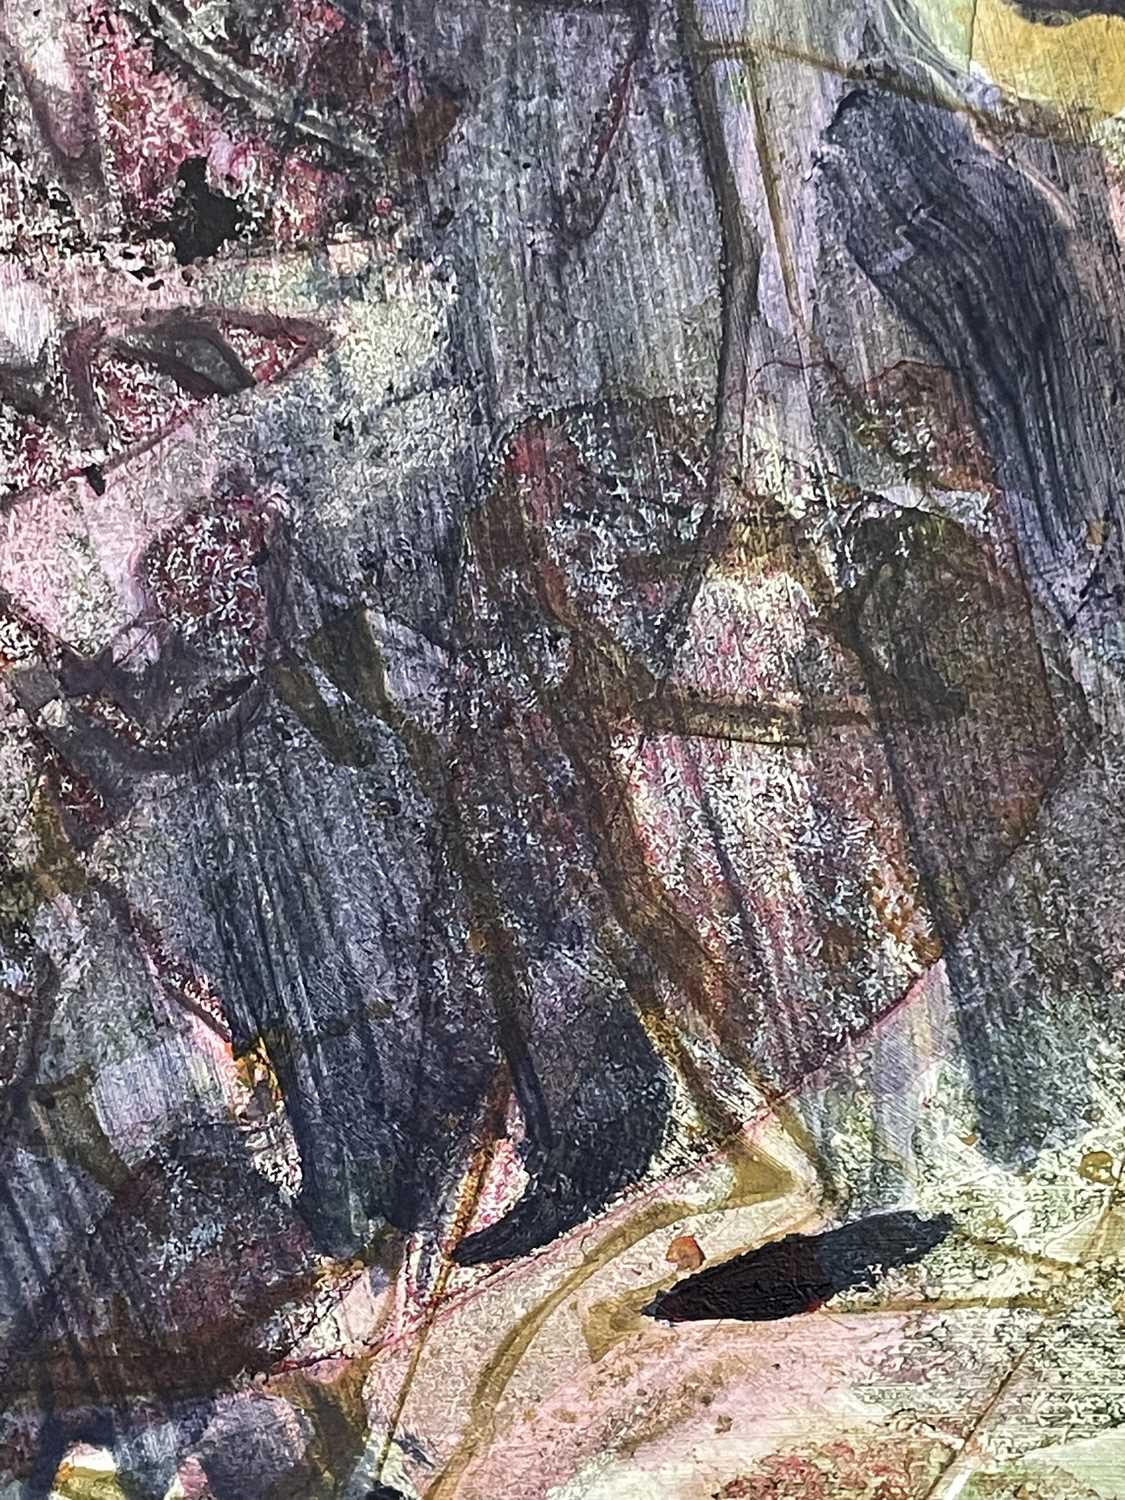 Jack DAVISBoswens StoneMixed media on boardInitialled Signed, inscribed and dated 2017 to verso 61 x - Image 2 of 4